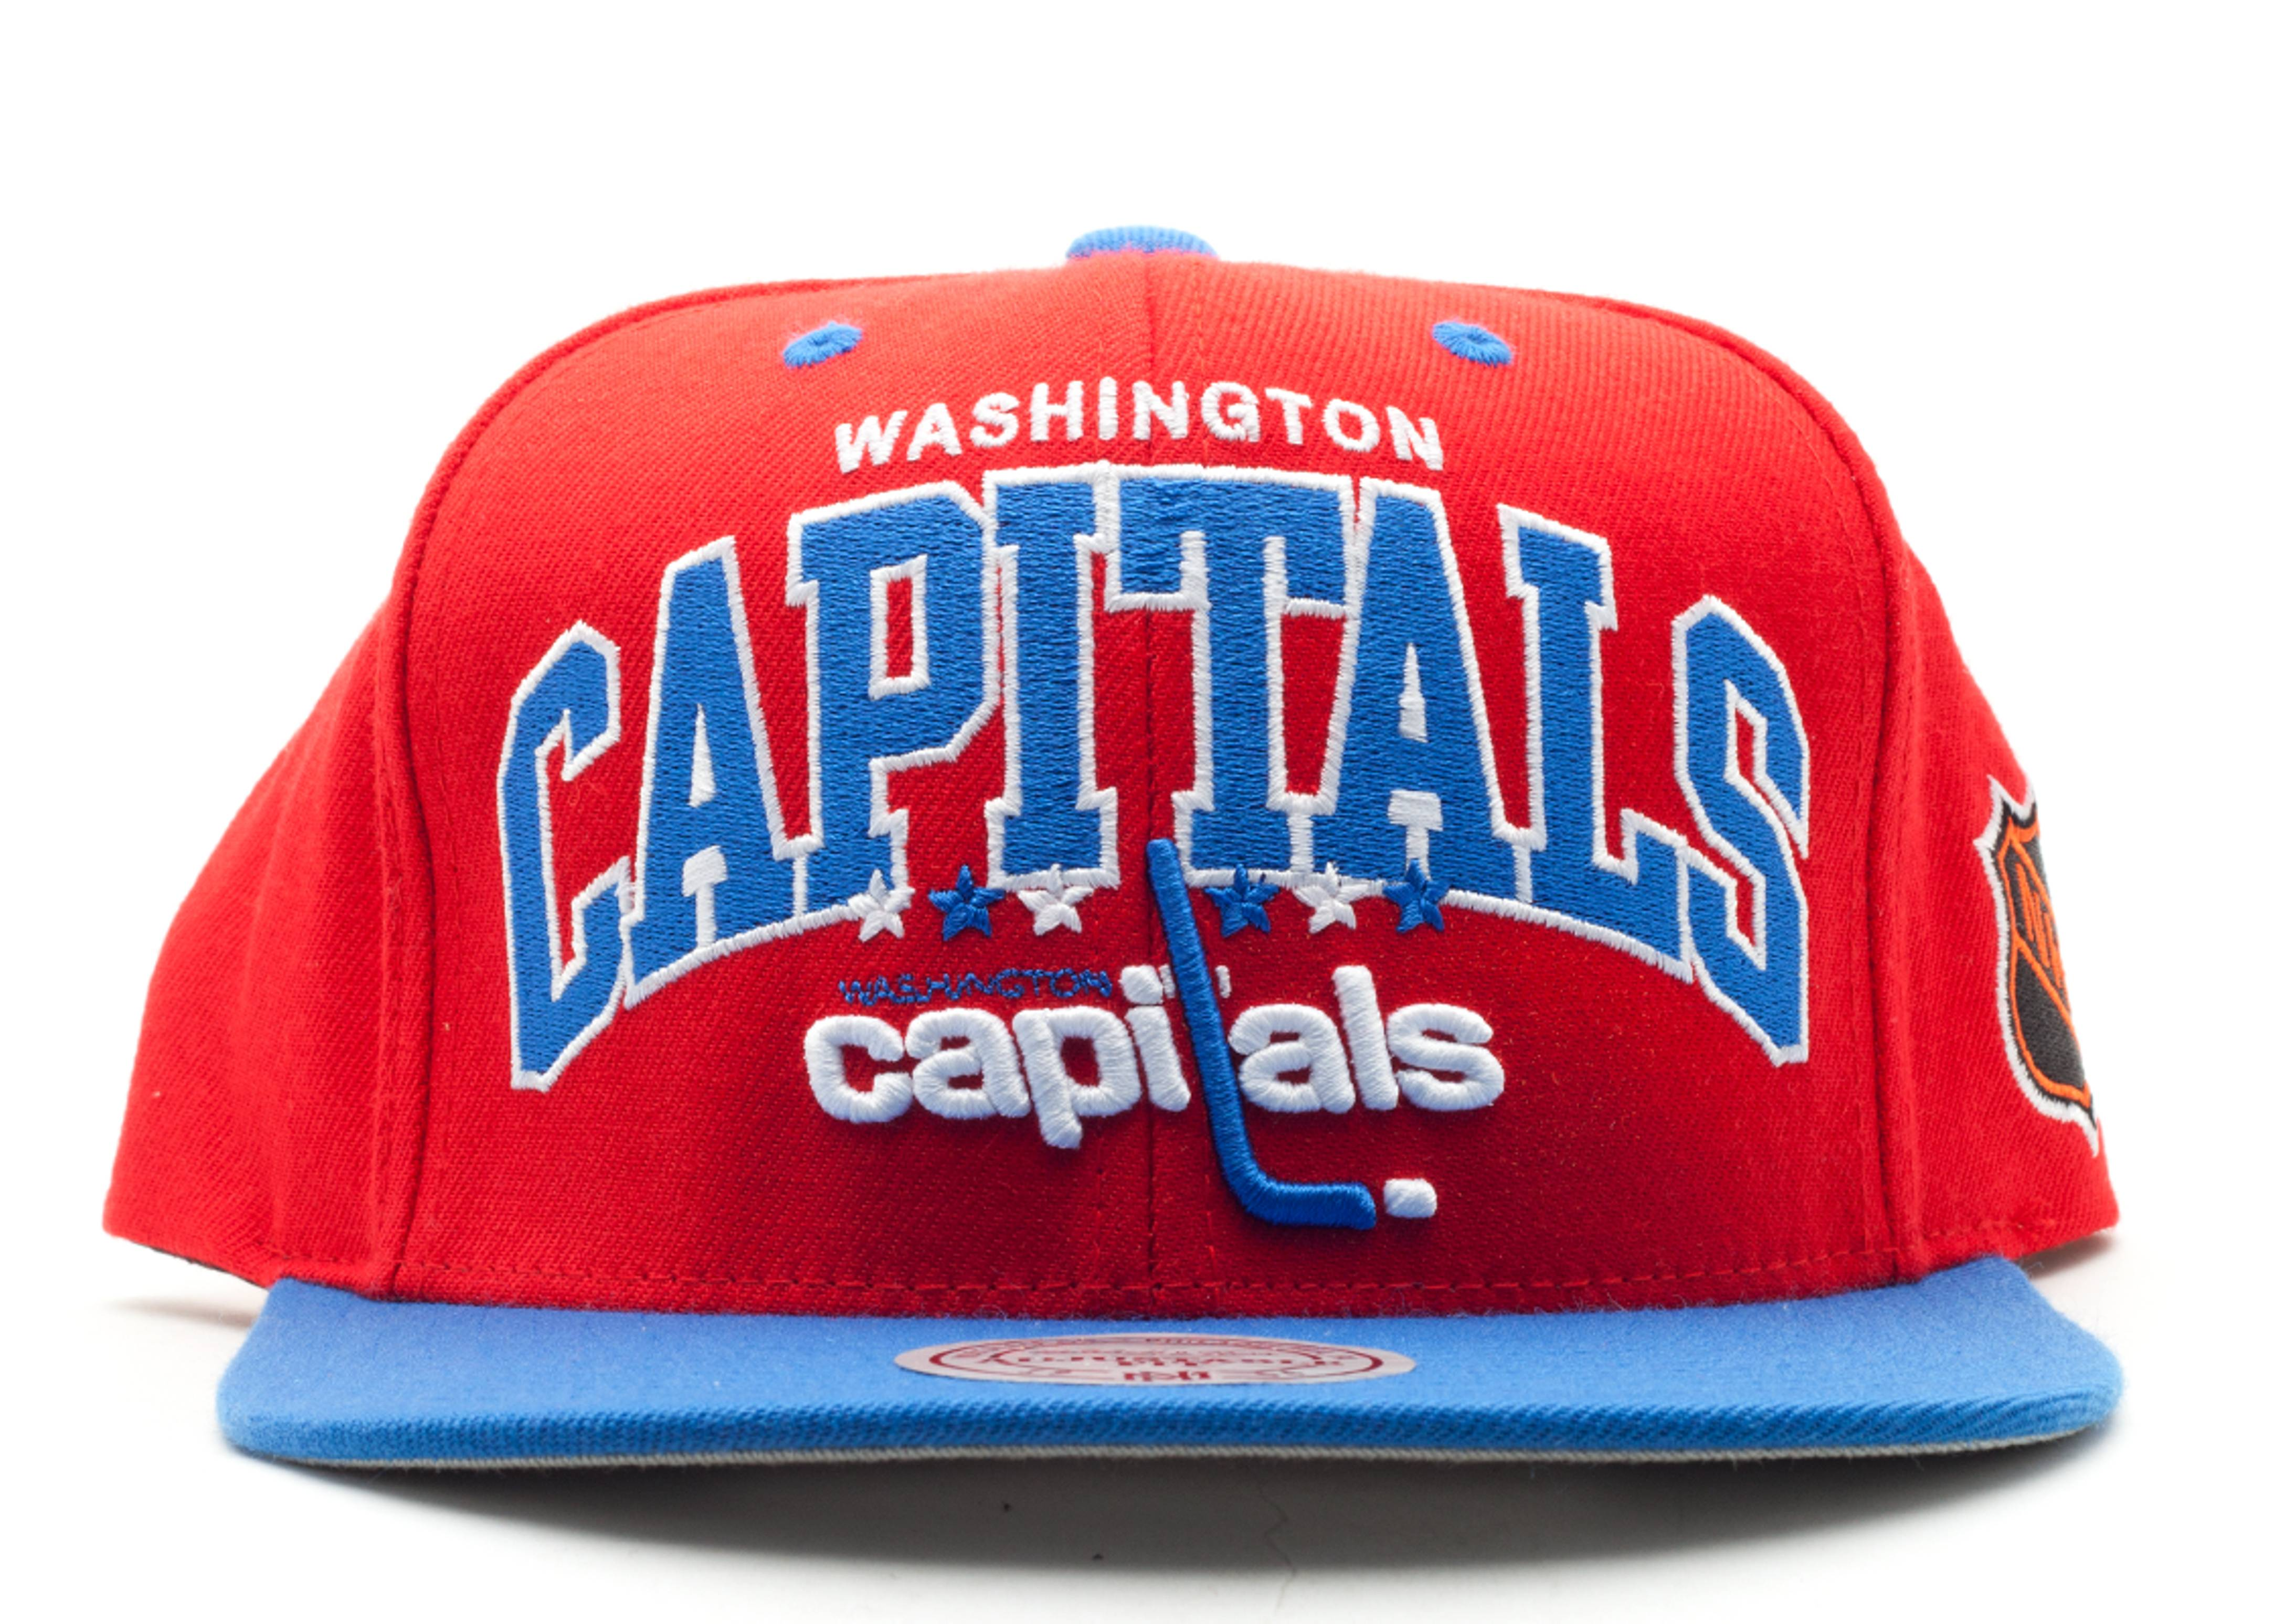 eashington captals snap-back